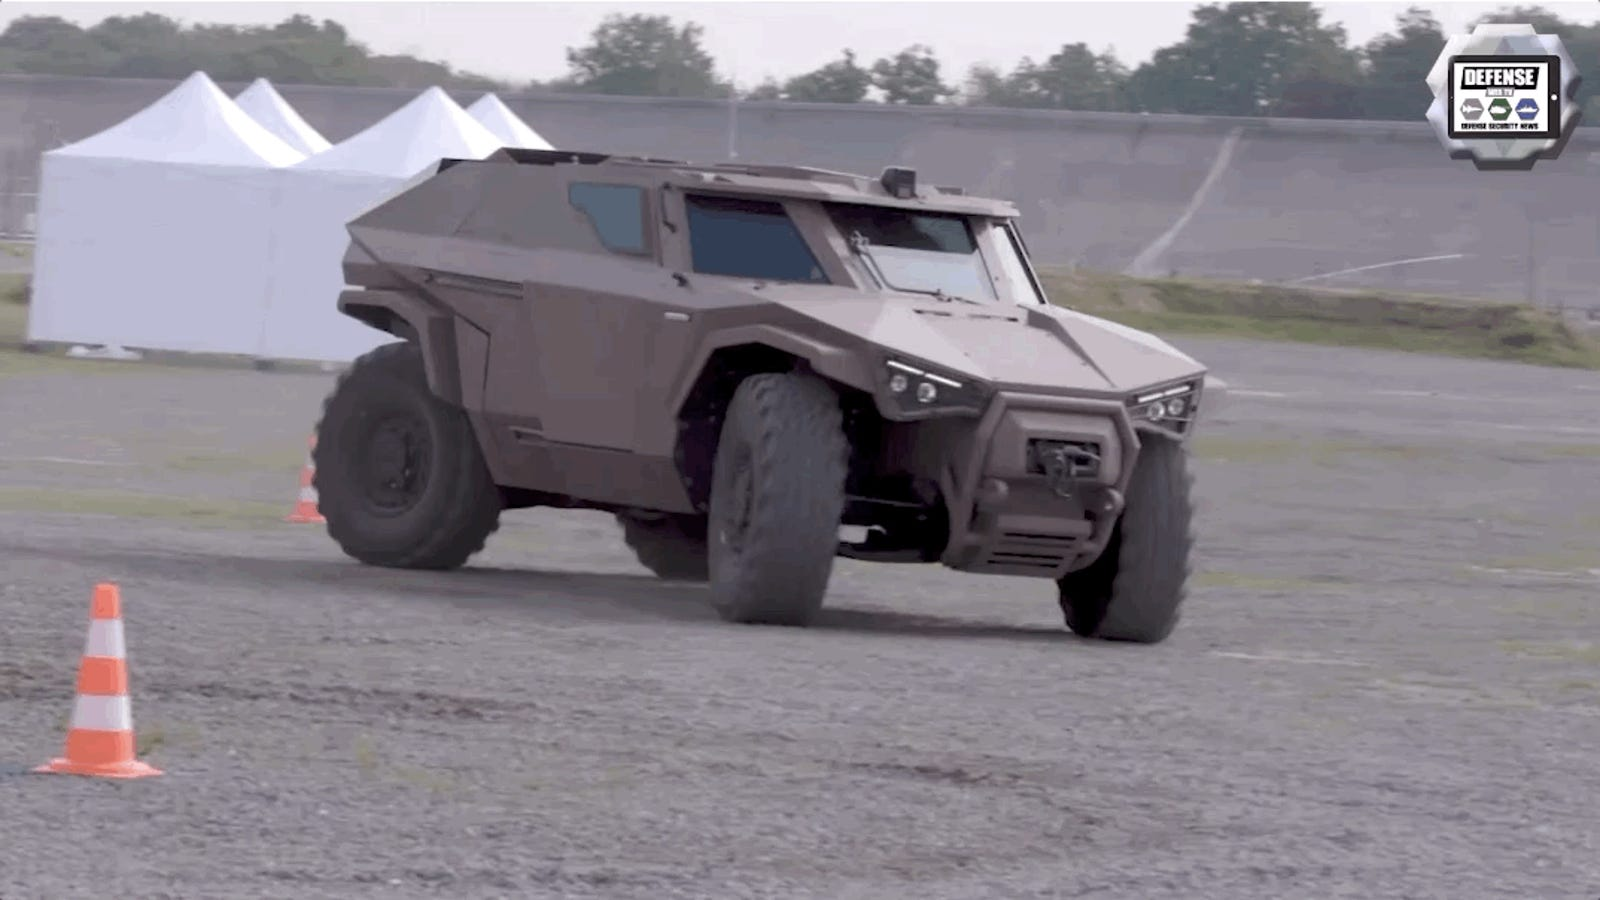 Real Life Halo Vehicles: This French Military Vehicle Is Kind Of Like A Real-Life